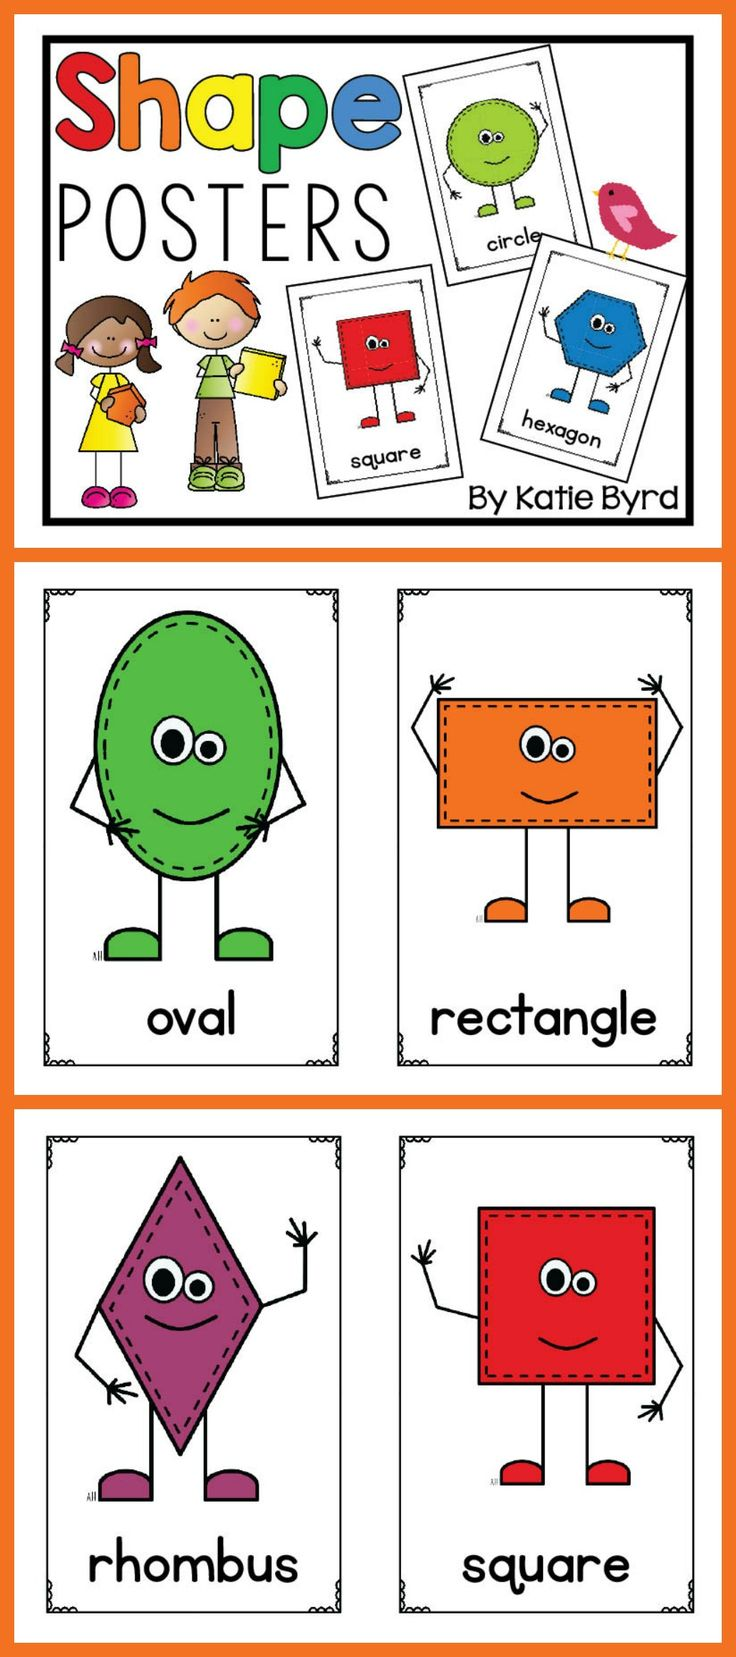 Shape posters that go with any classroom decor!  They make a great reference bulletin board or can be used for shape activities also.  Perfect for any kindergarten or first grade classroom. $